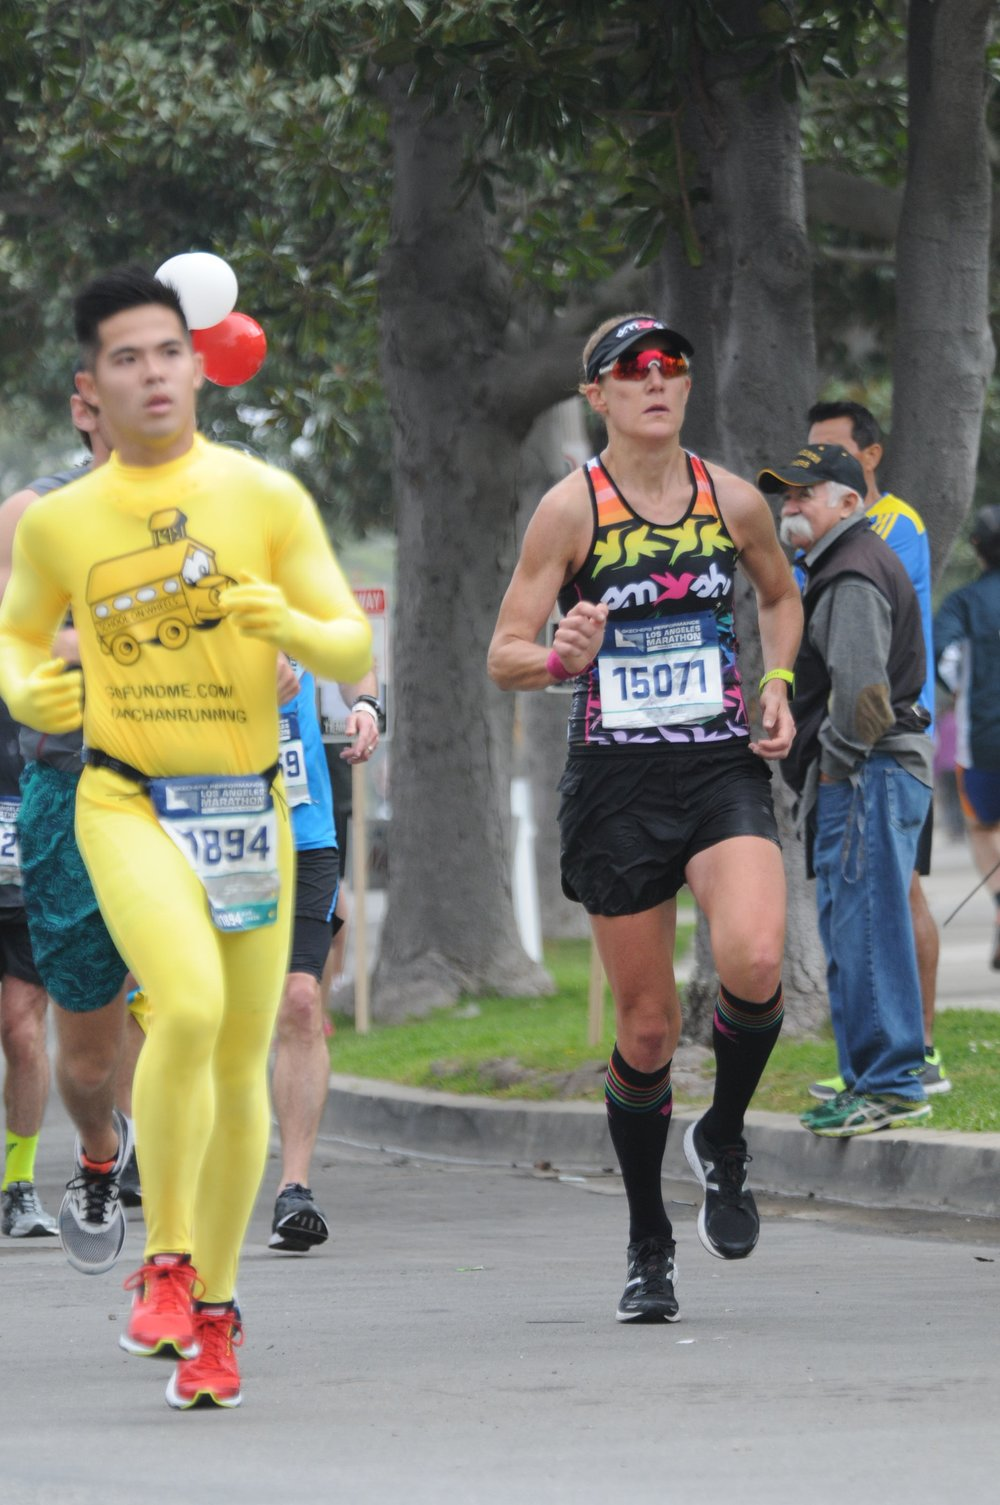 I love this photo, I think I look pretty tough, but for the record, the guy in the yellow onesie beat me across the finish line.